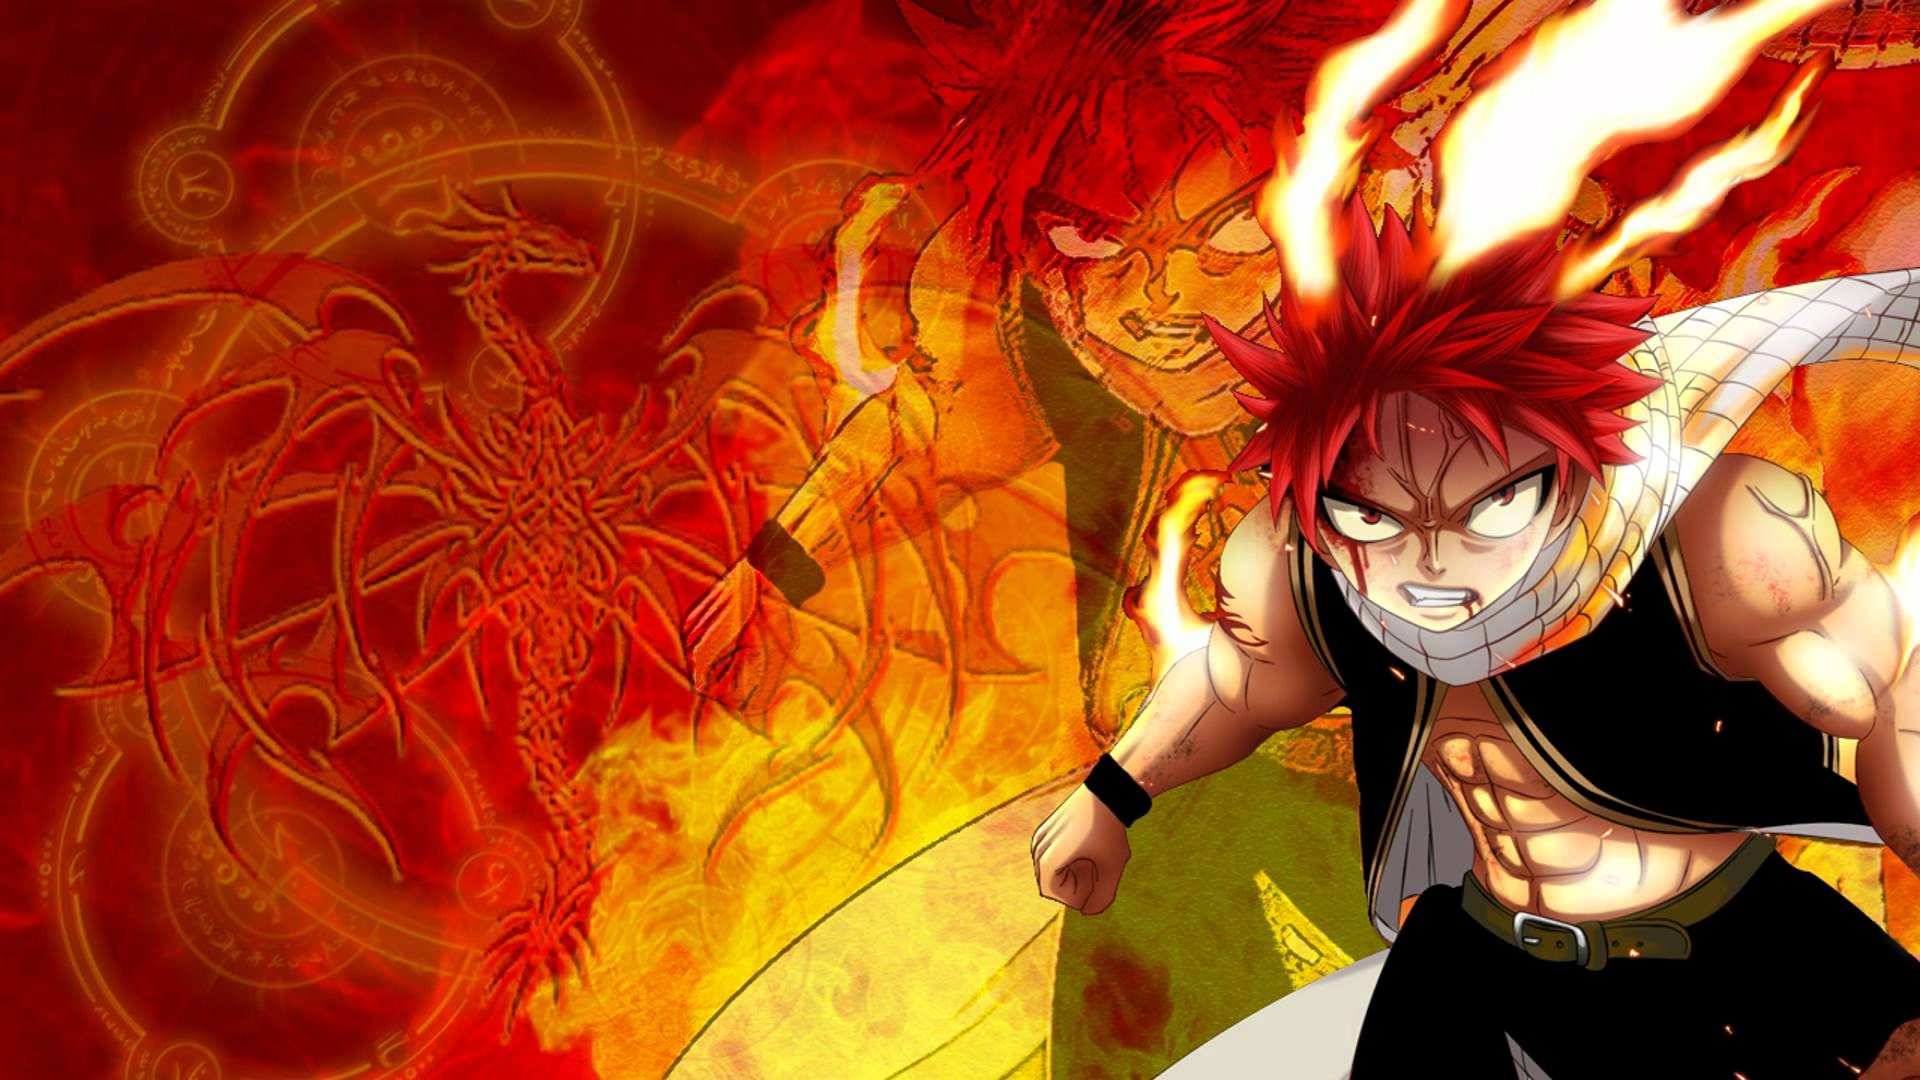 HD Fairy Tail 4k Picture